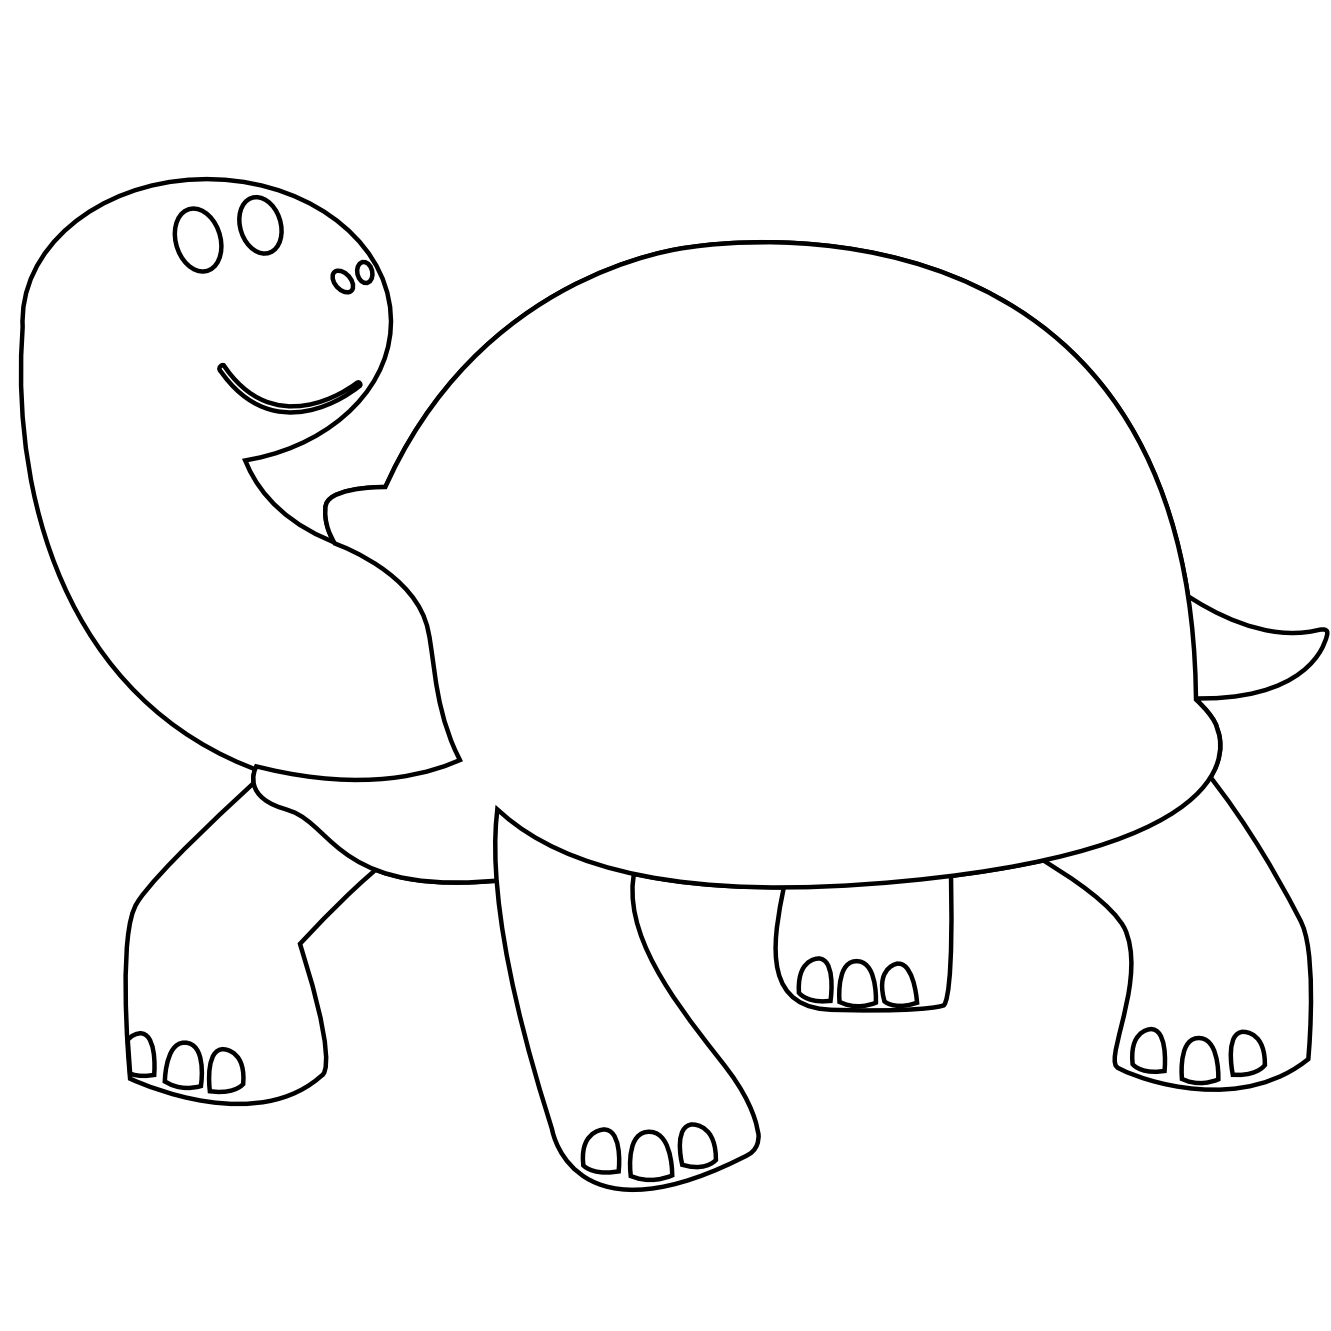 Line Art Animals Drawings : Line drawing of animals clipart best